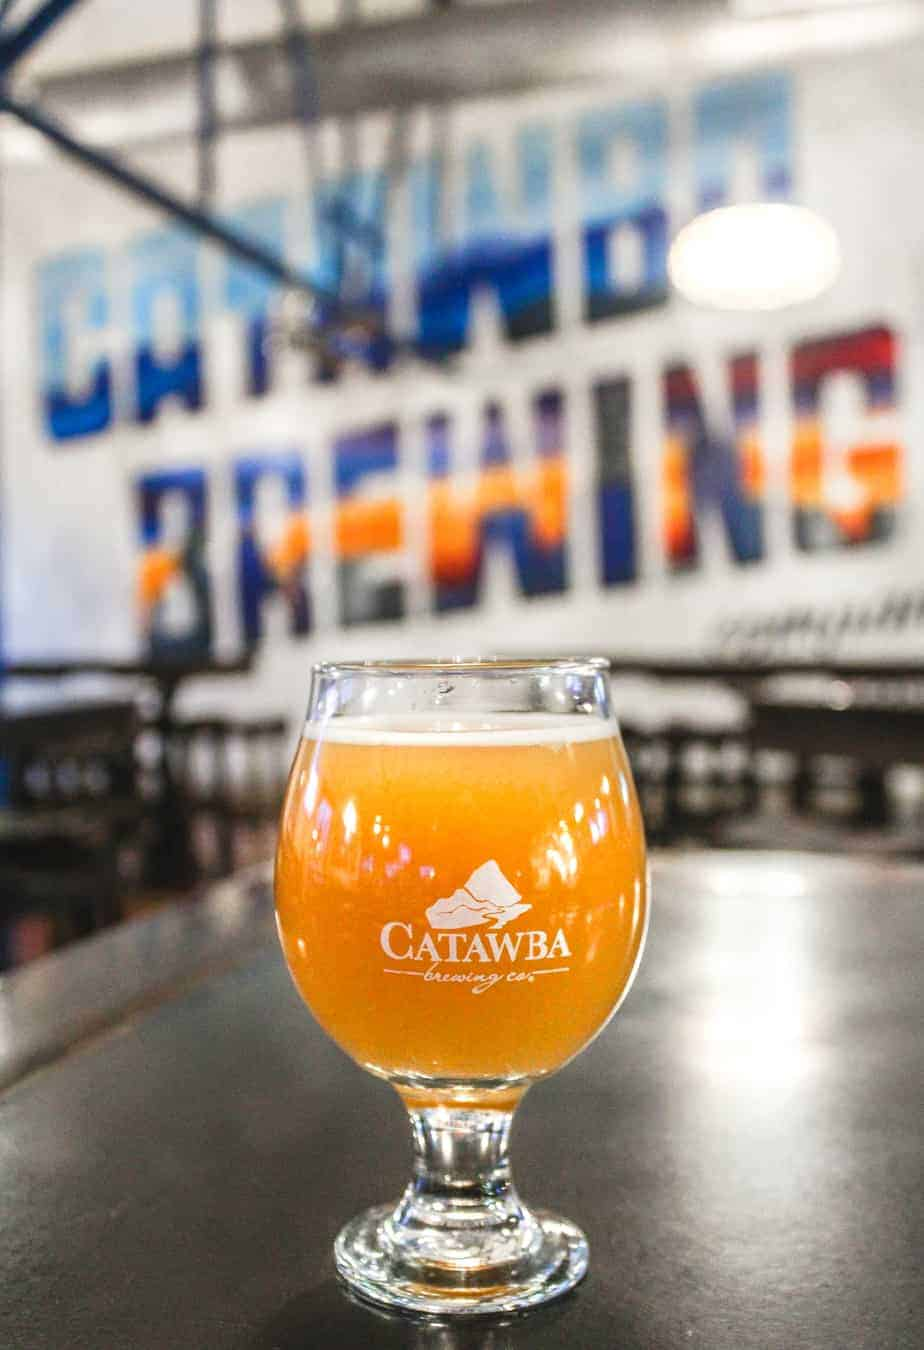 charlotte brewery bracket catawba brewing